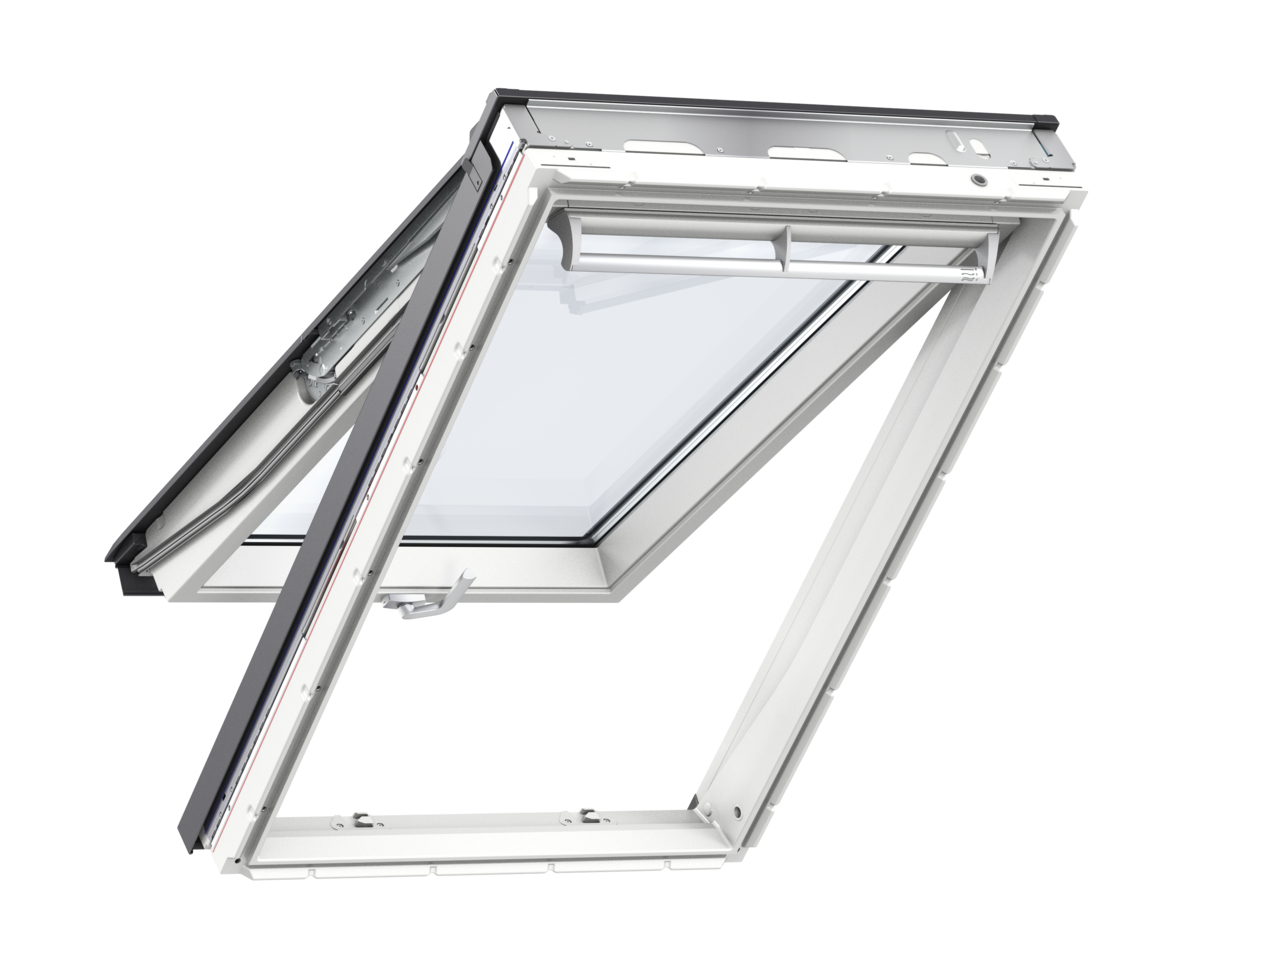 Velux GPU CK06 550 x 1180mm Top Hung 34Pane Roof Window - White Polyurethane